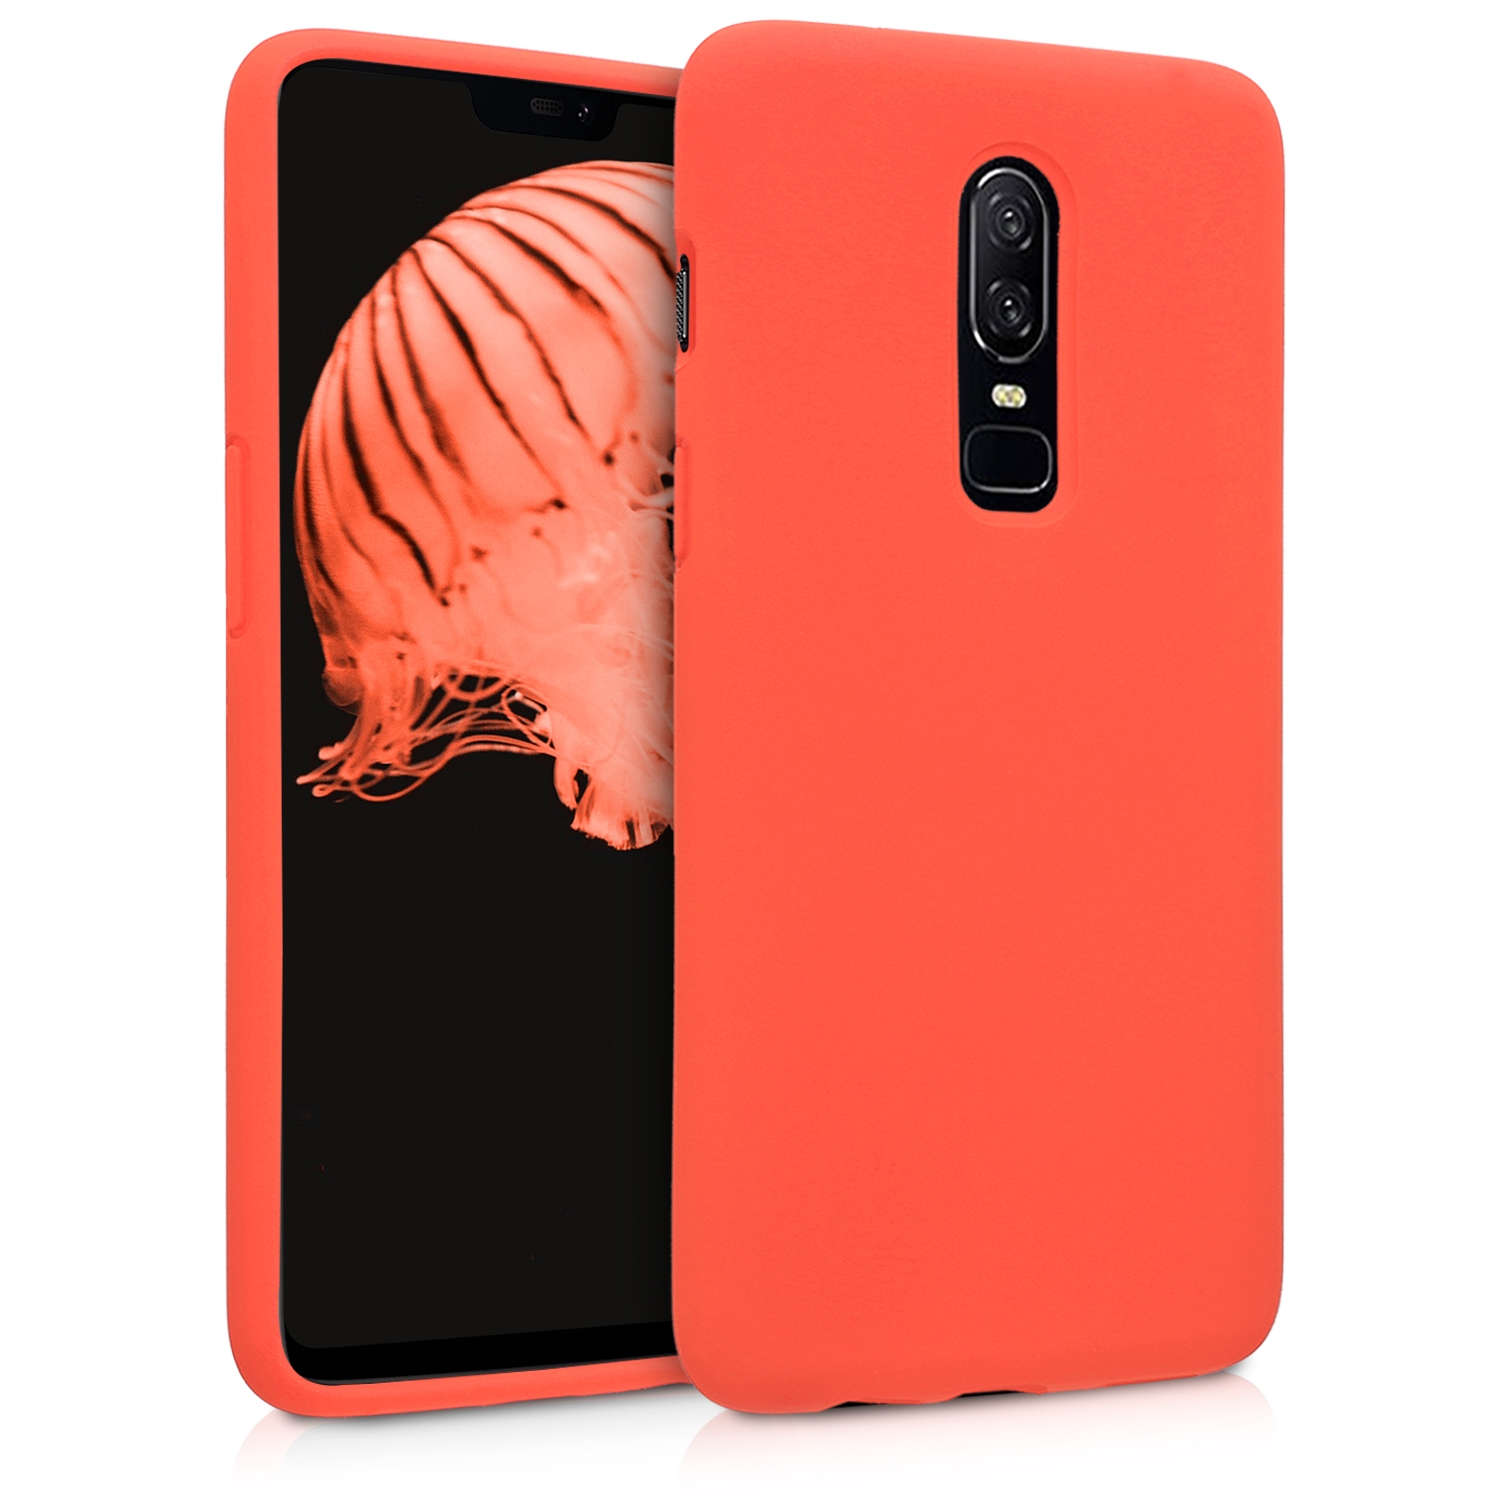 KW Θήκη Σιλικόνης OnePlus 6 - Soft Flexible Rubber Protective Cover - Orange (46122.29)